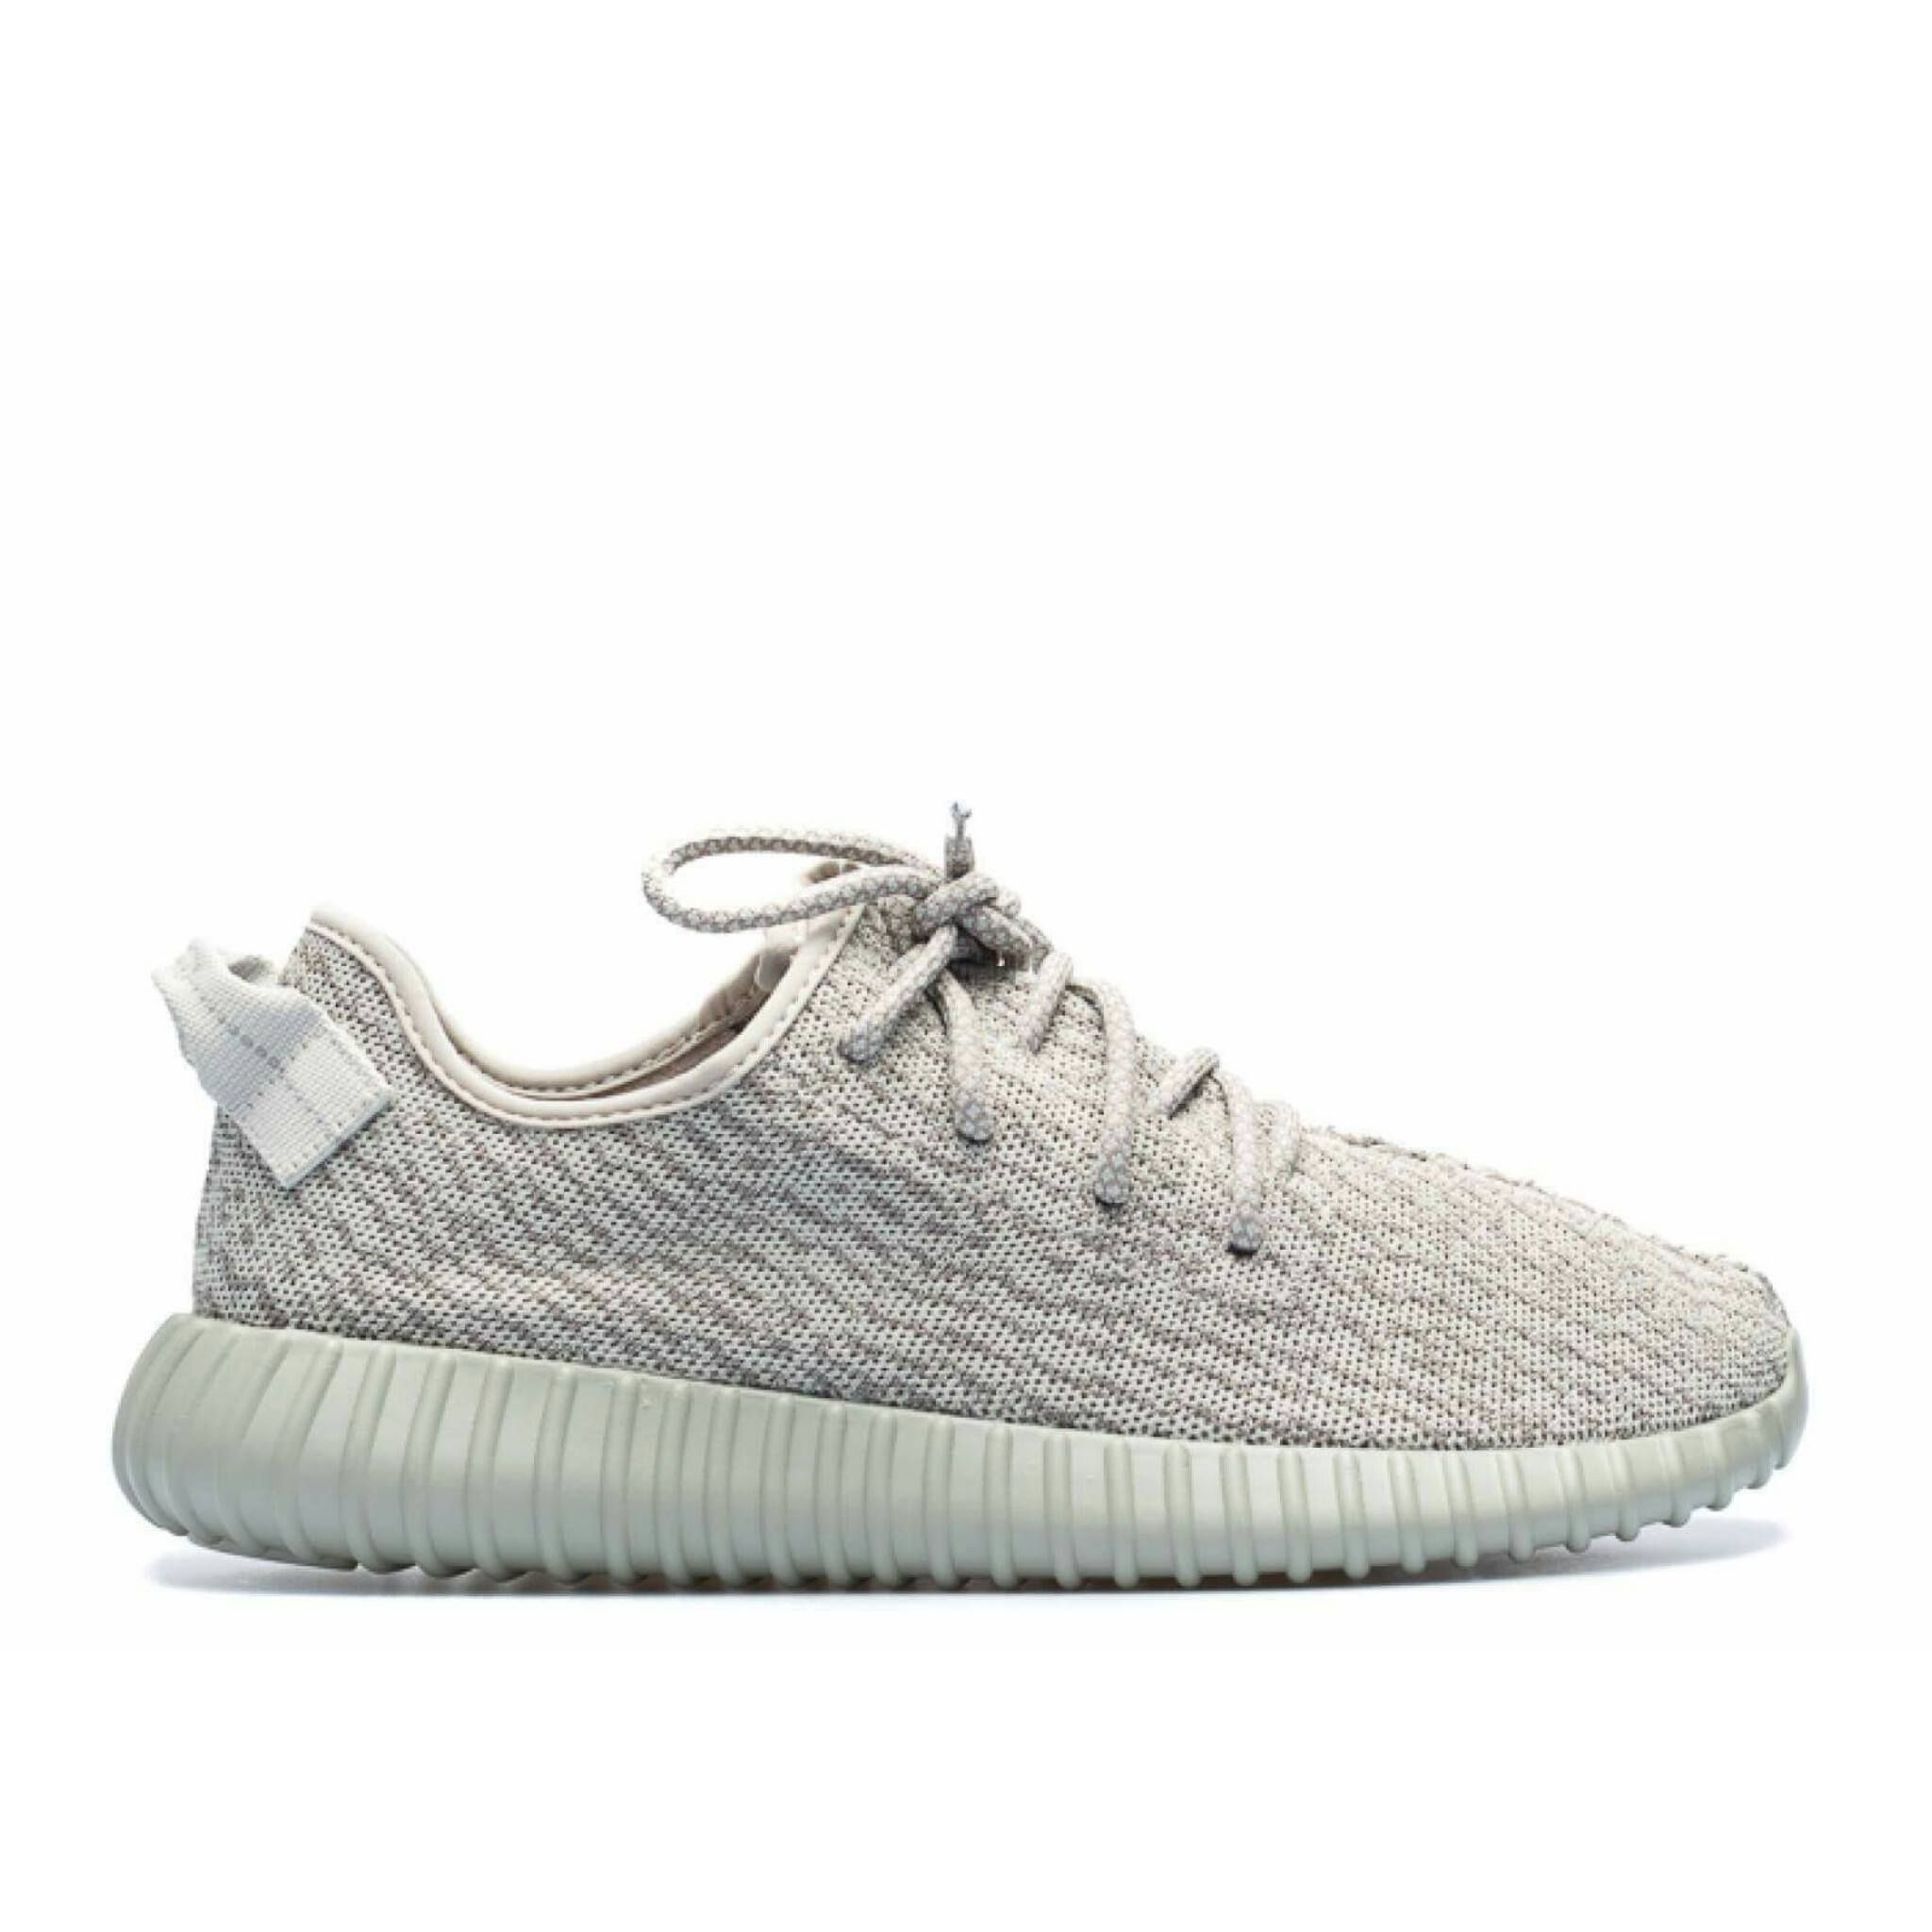 Adidas Yeezy 350 V1 Moon Rock For Men | Yeezy, Adidas shoes